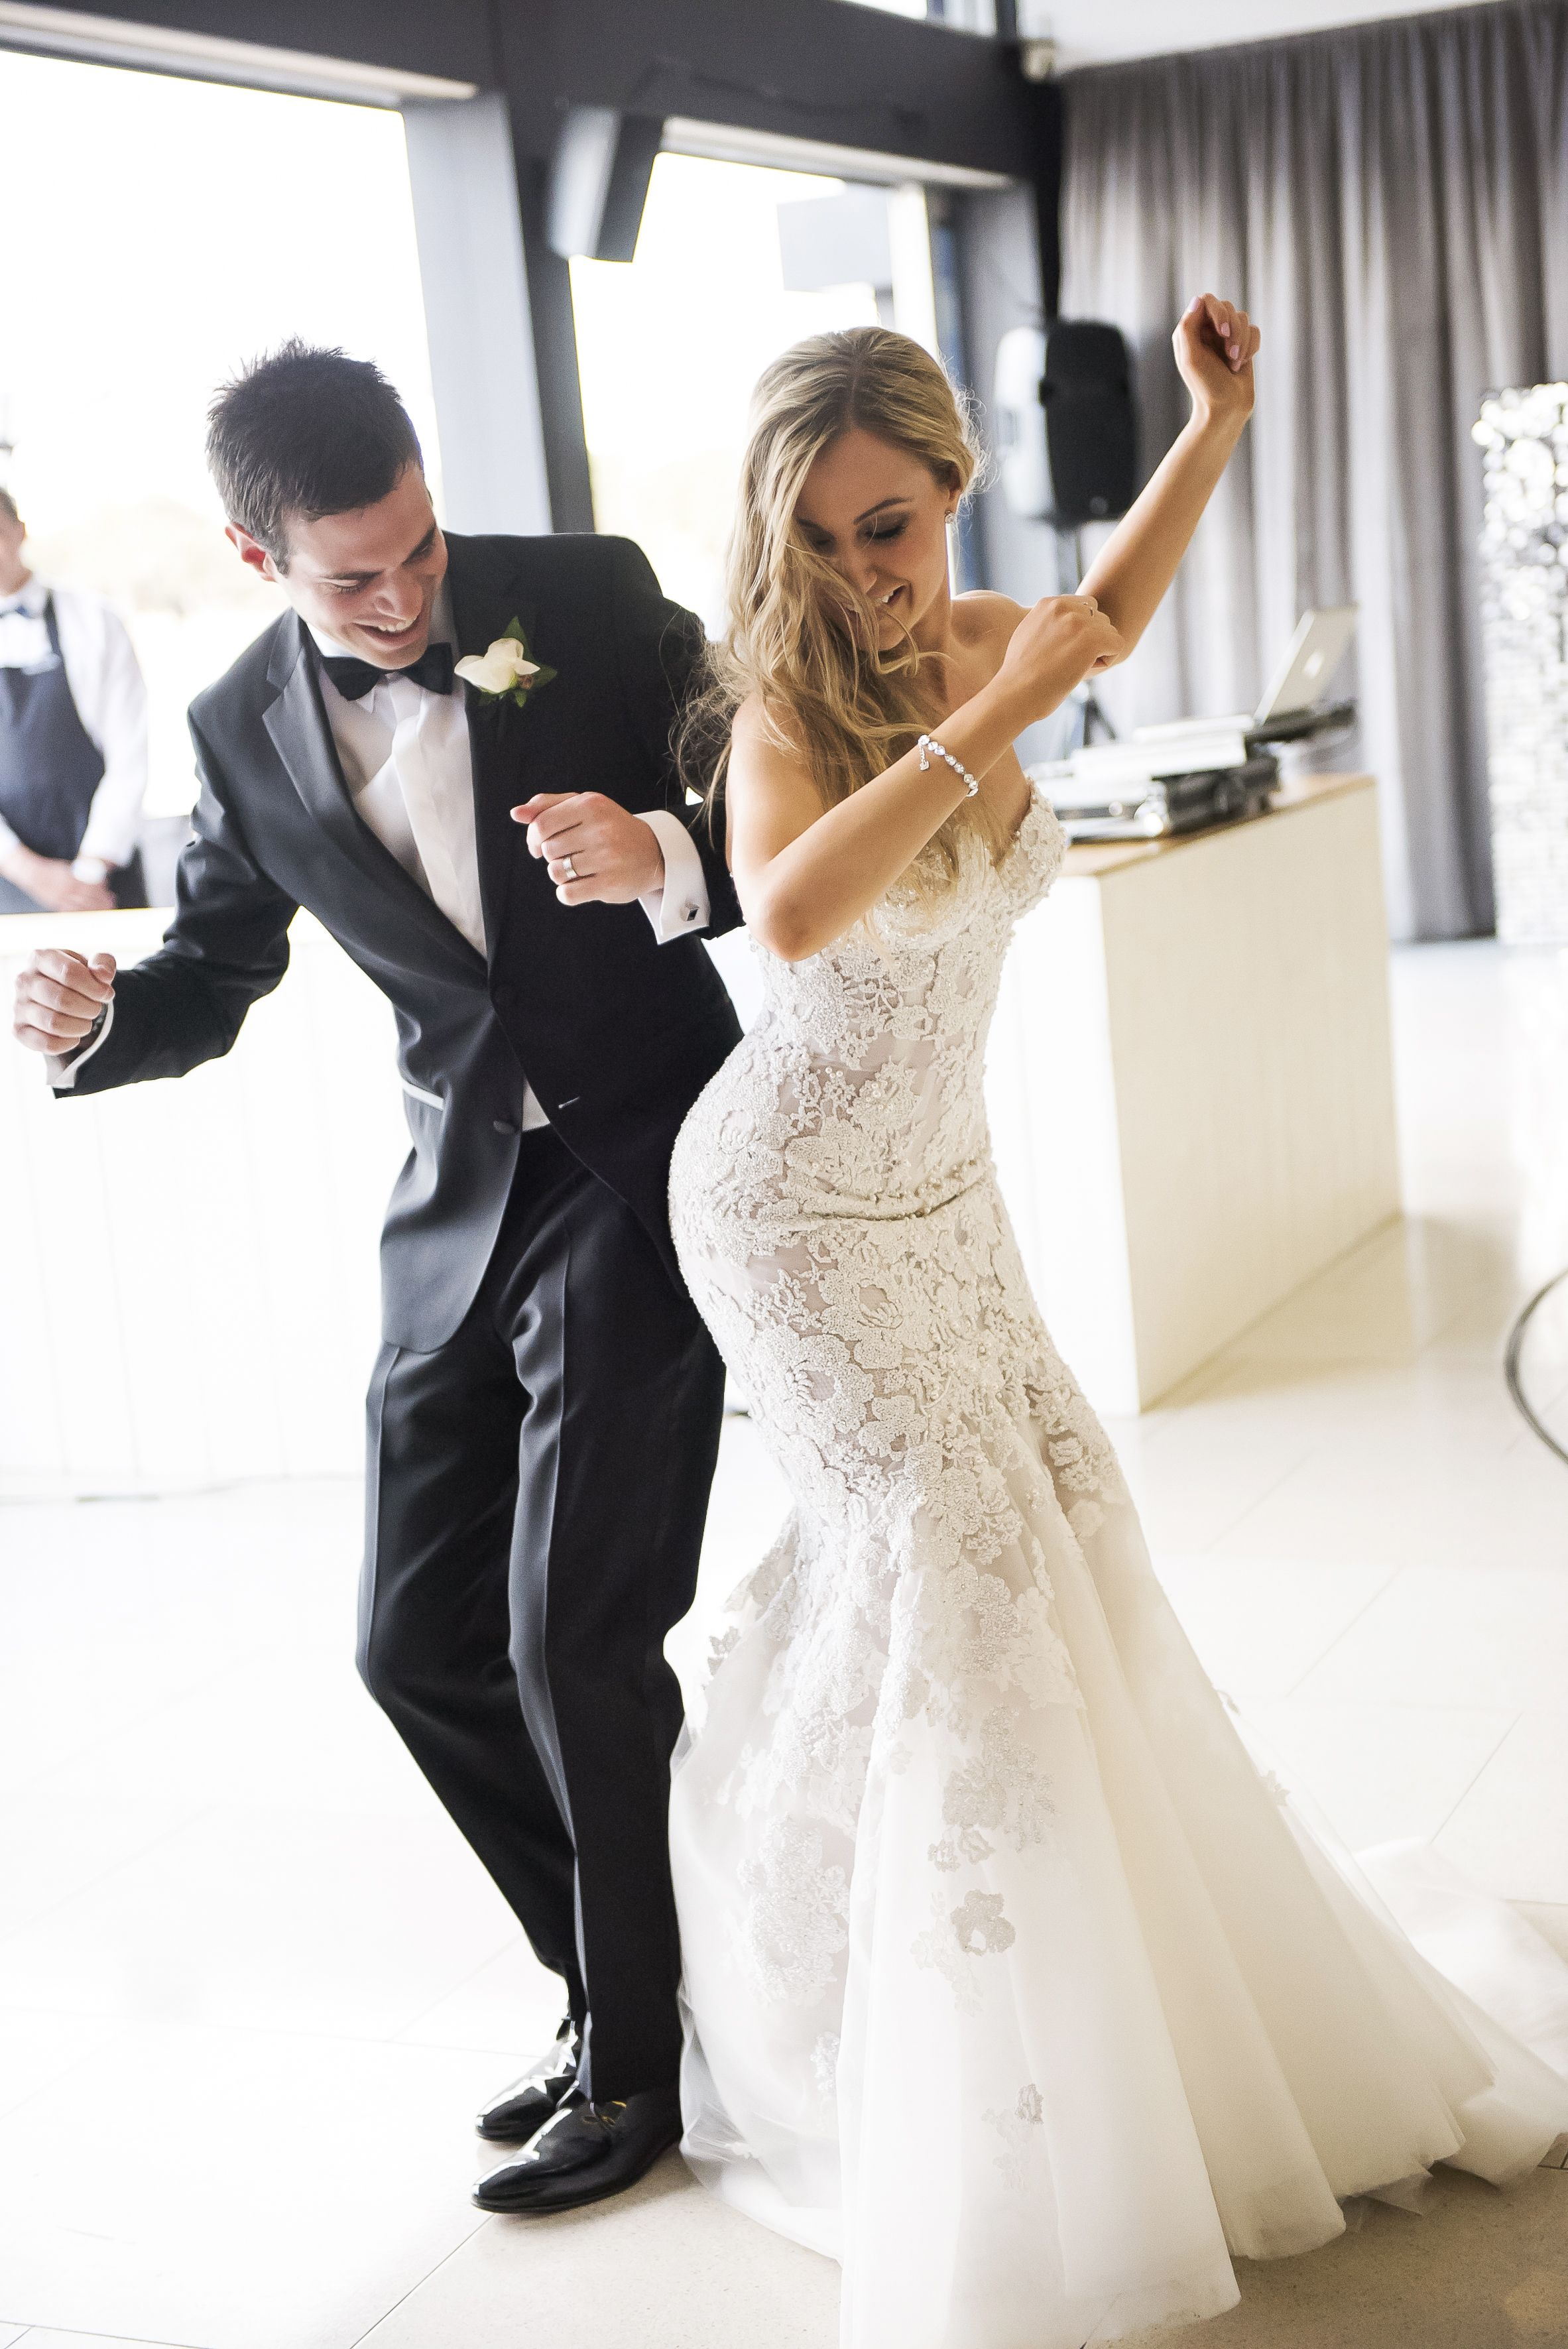 Bride and groom wedding dance | itakeyou.co.uk